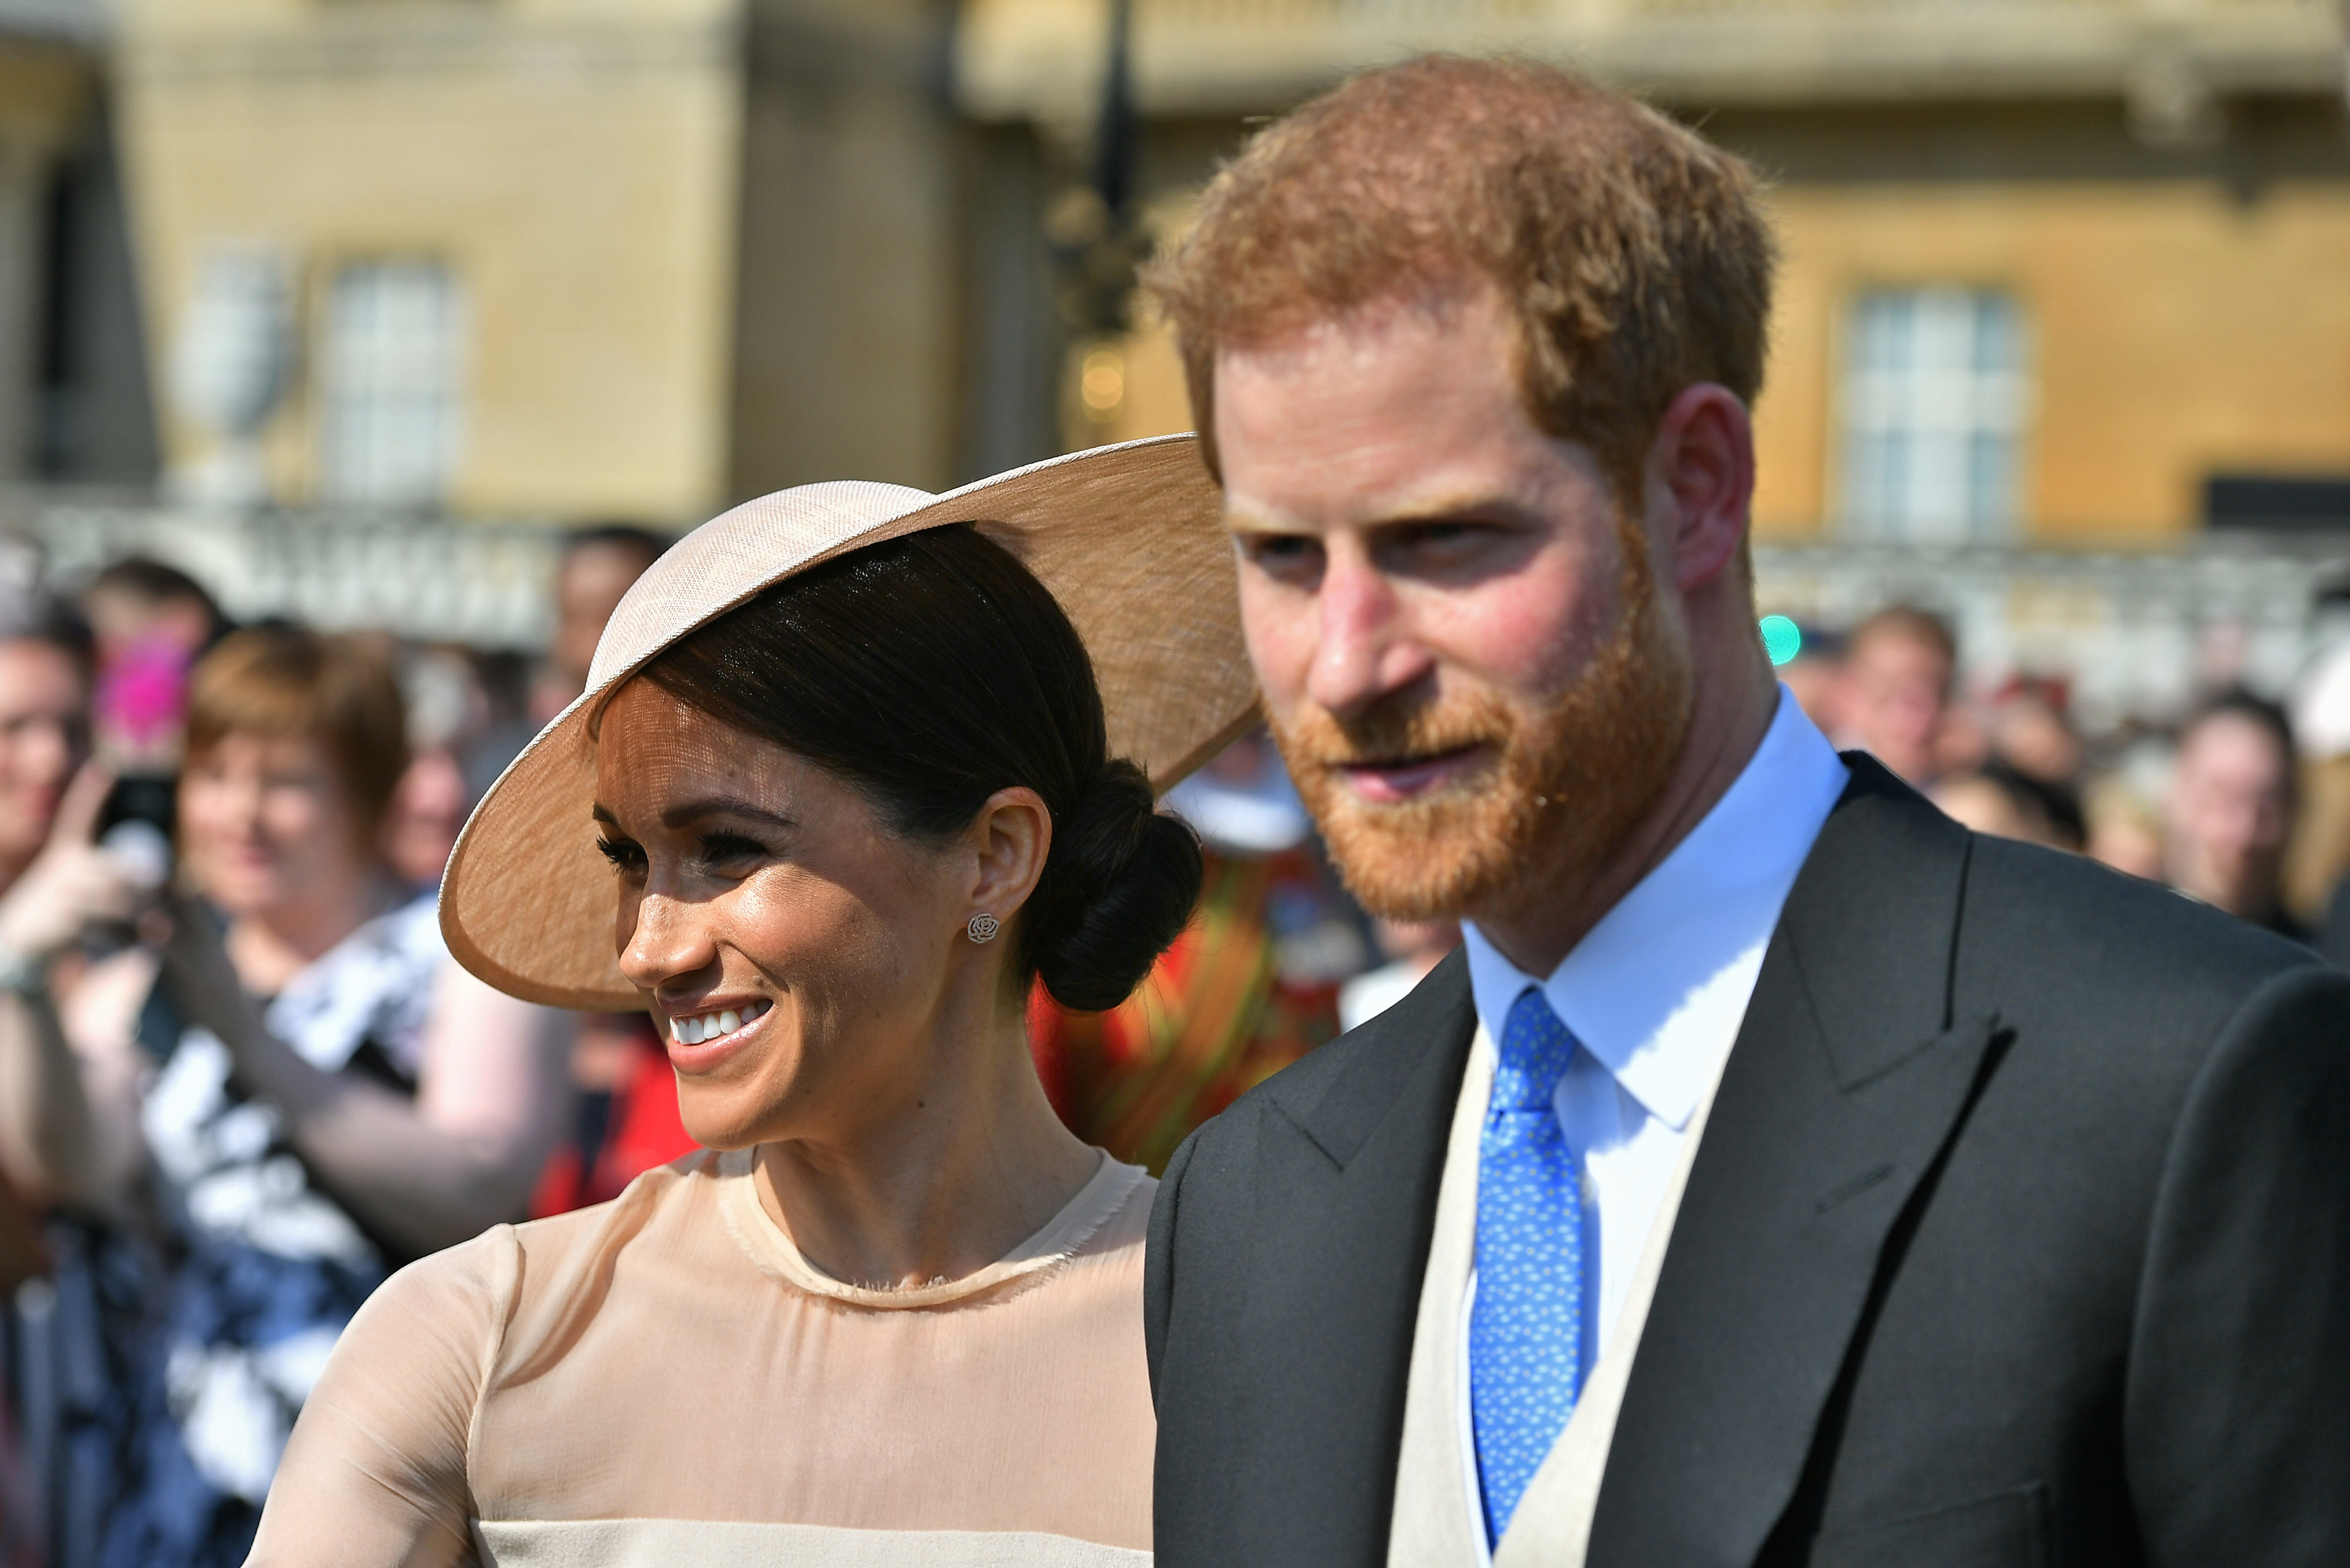 Prince Harry, Duke of Sussex and Meghan, Duchess of Sussex attend The Prince of Wales' 70th Birthday Patronage Celebration held at Buckingham Palace on May 22, 2018 in London, England (Getty Images)